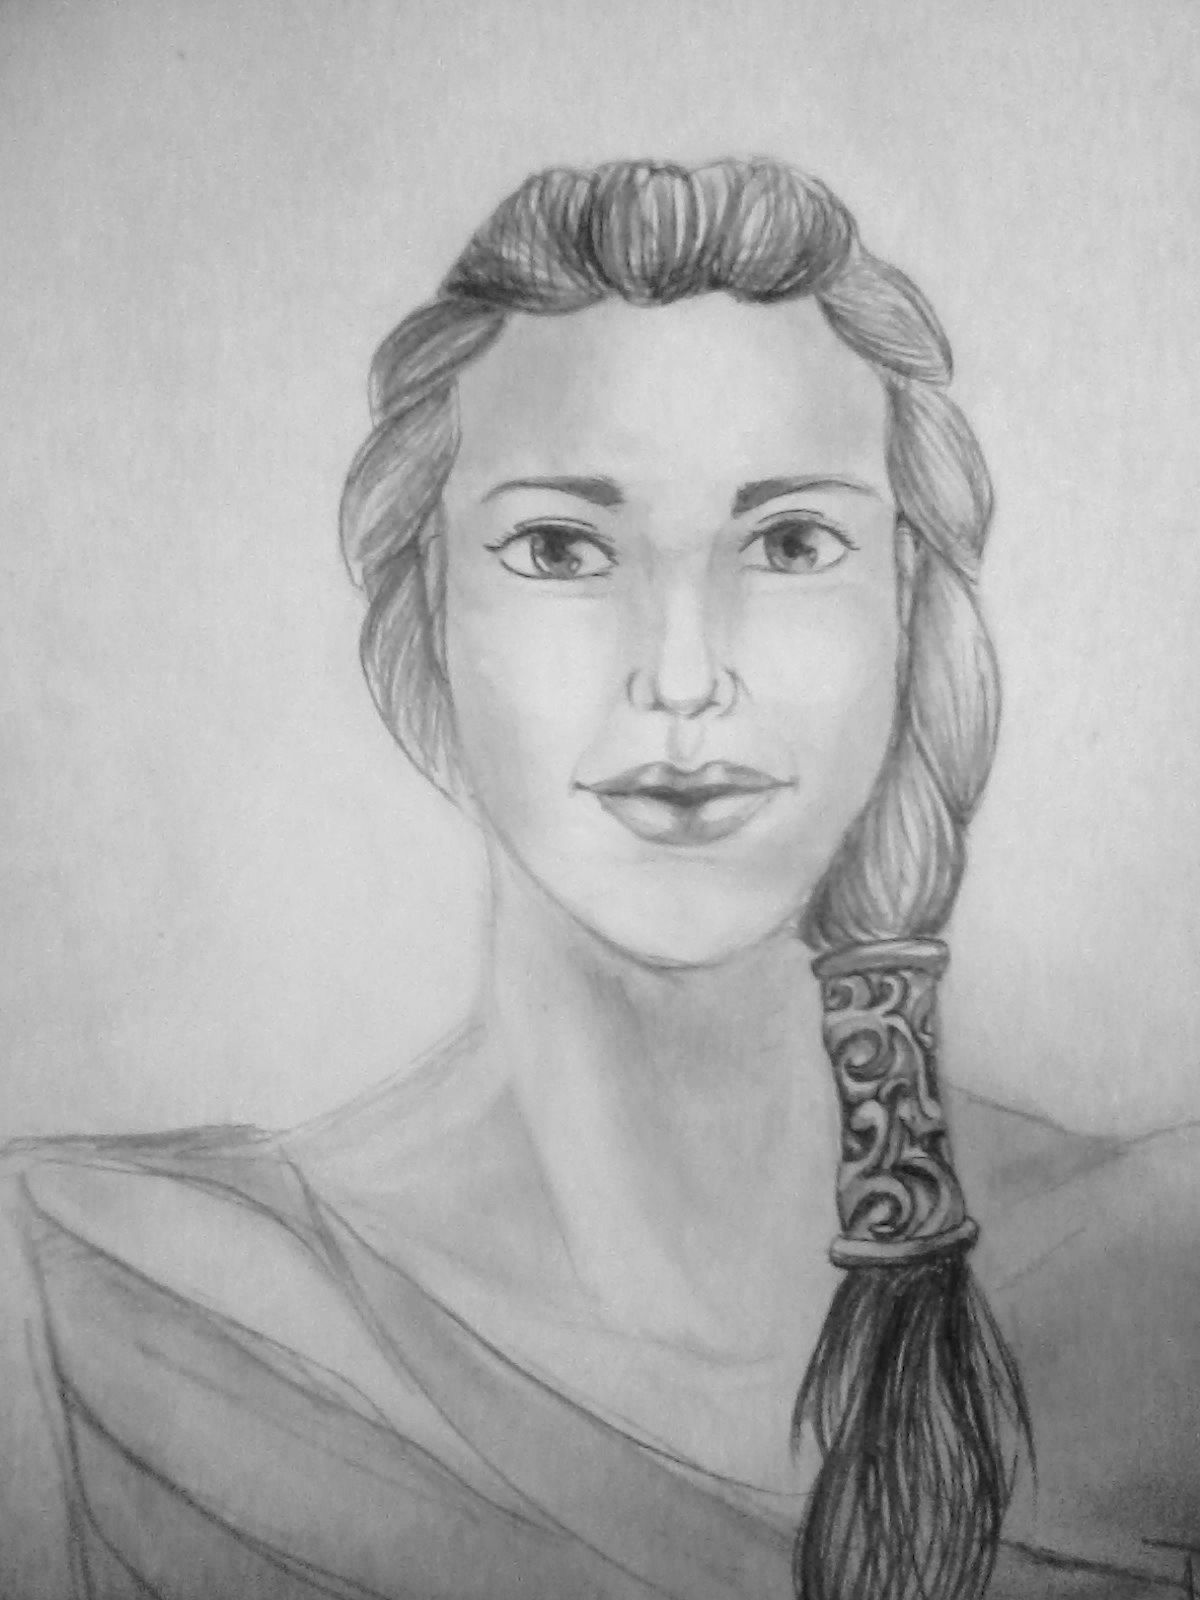 How to draw a face (portrait) of the girl of the amazon with a pencil step by step